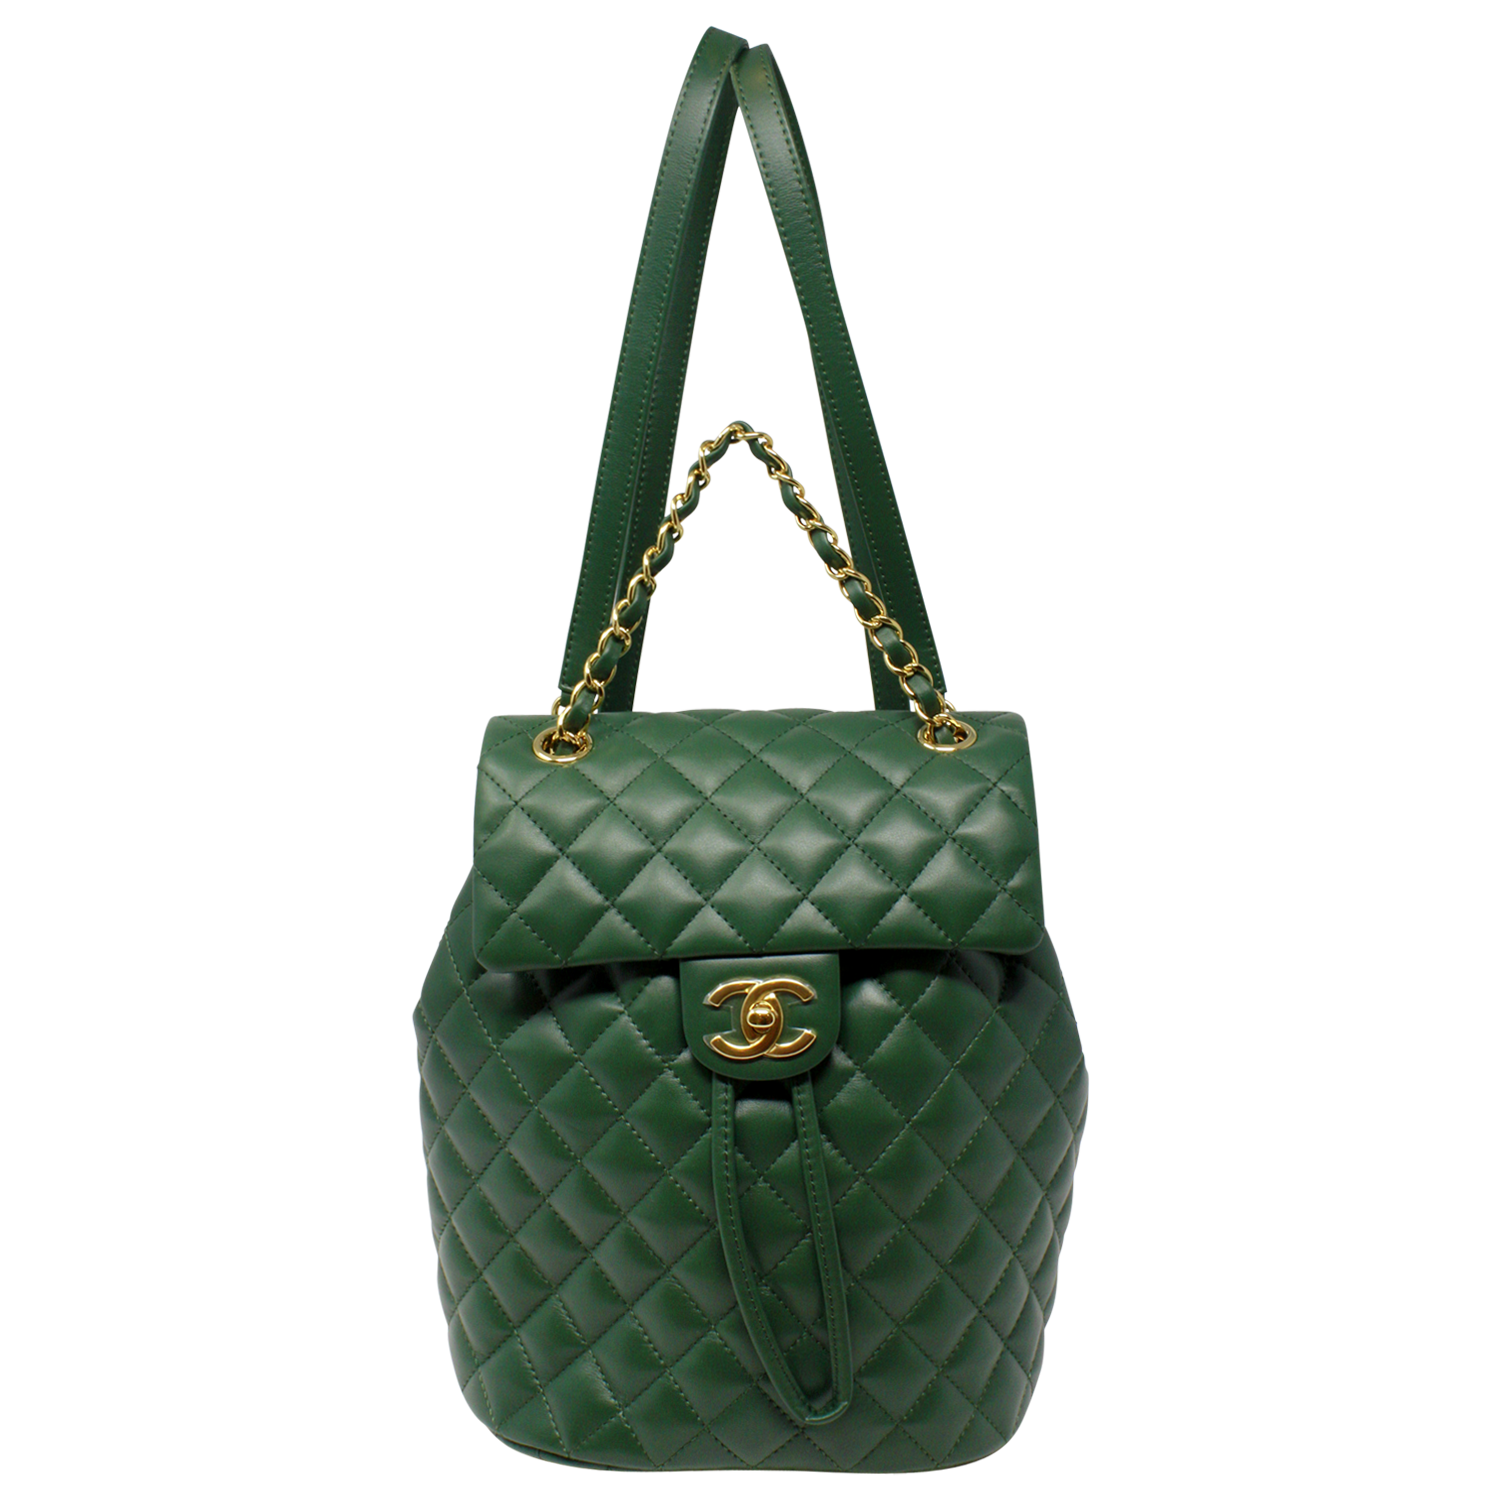 Chanel Green Quilted Lambskin Leather Backpack (Never Carried)